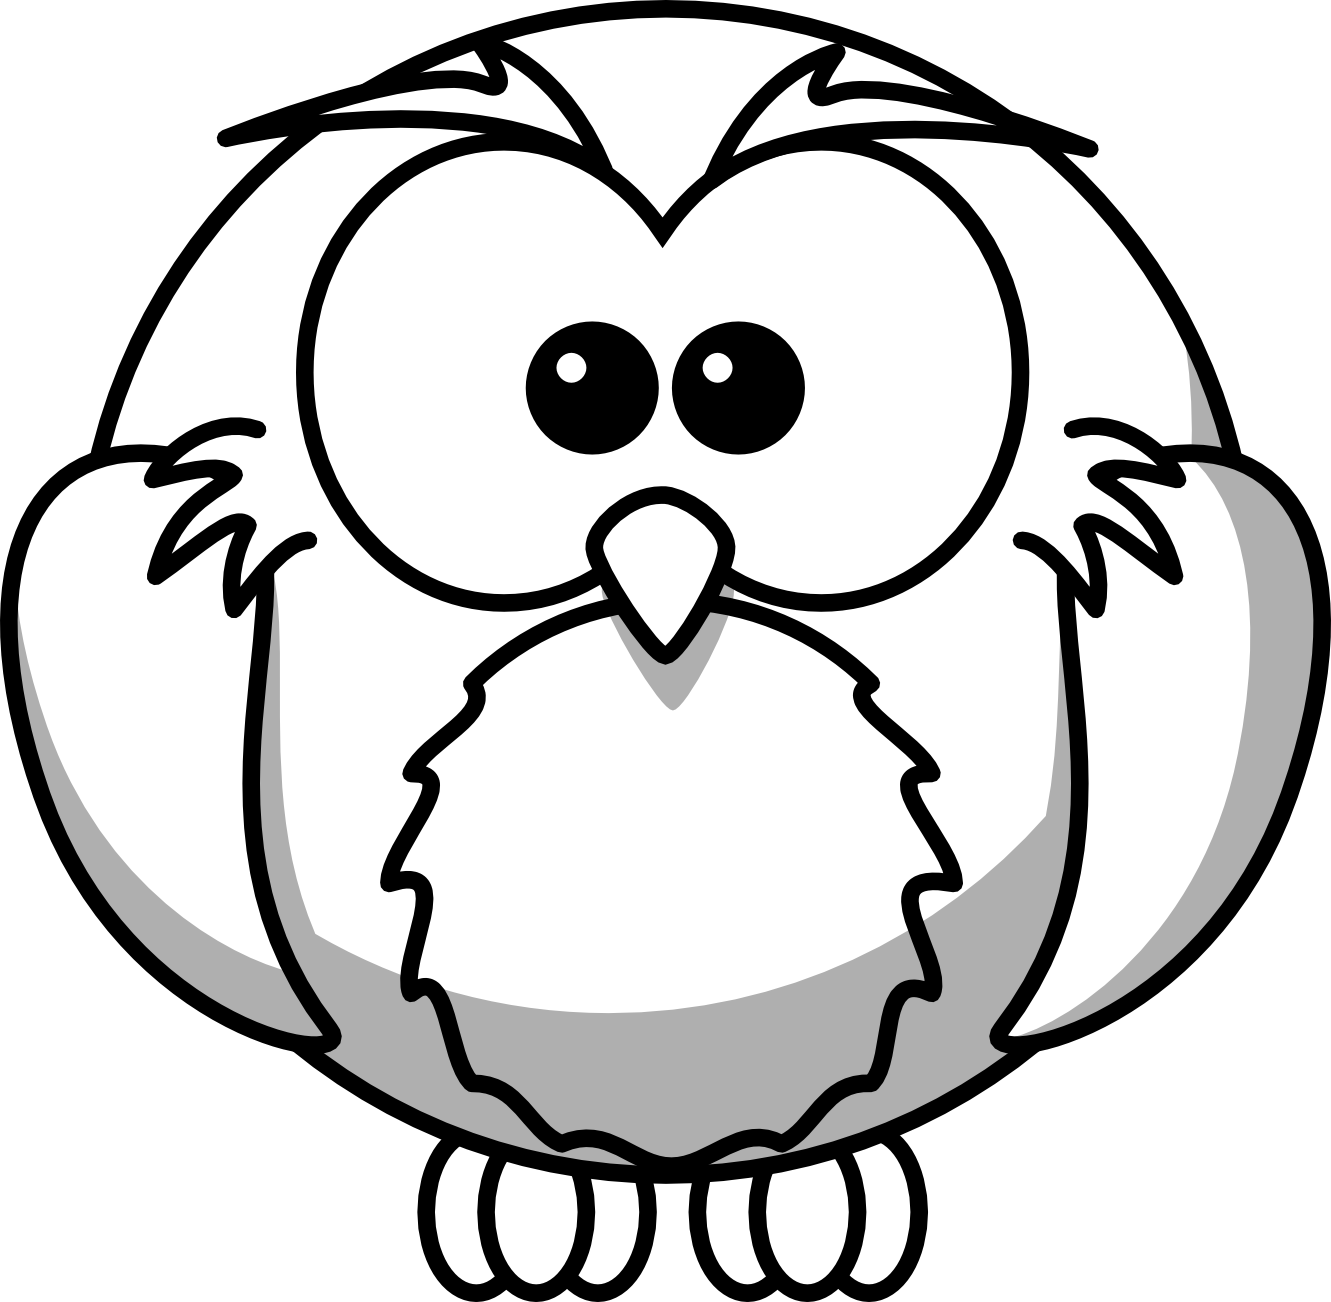 png royalty free download Owl panda free images. Listening clipart black and white